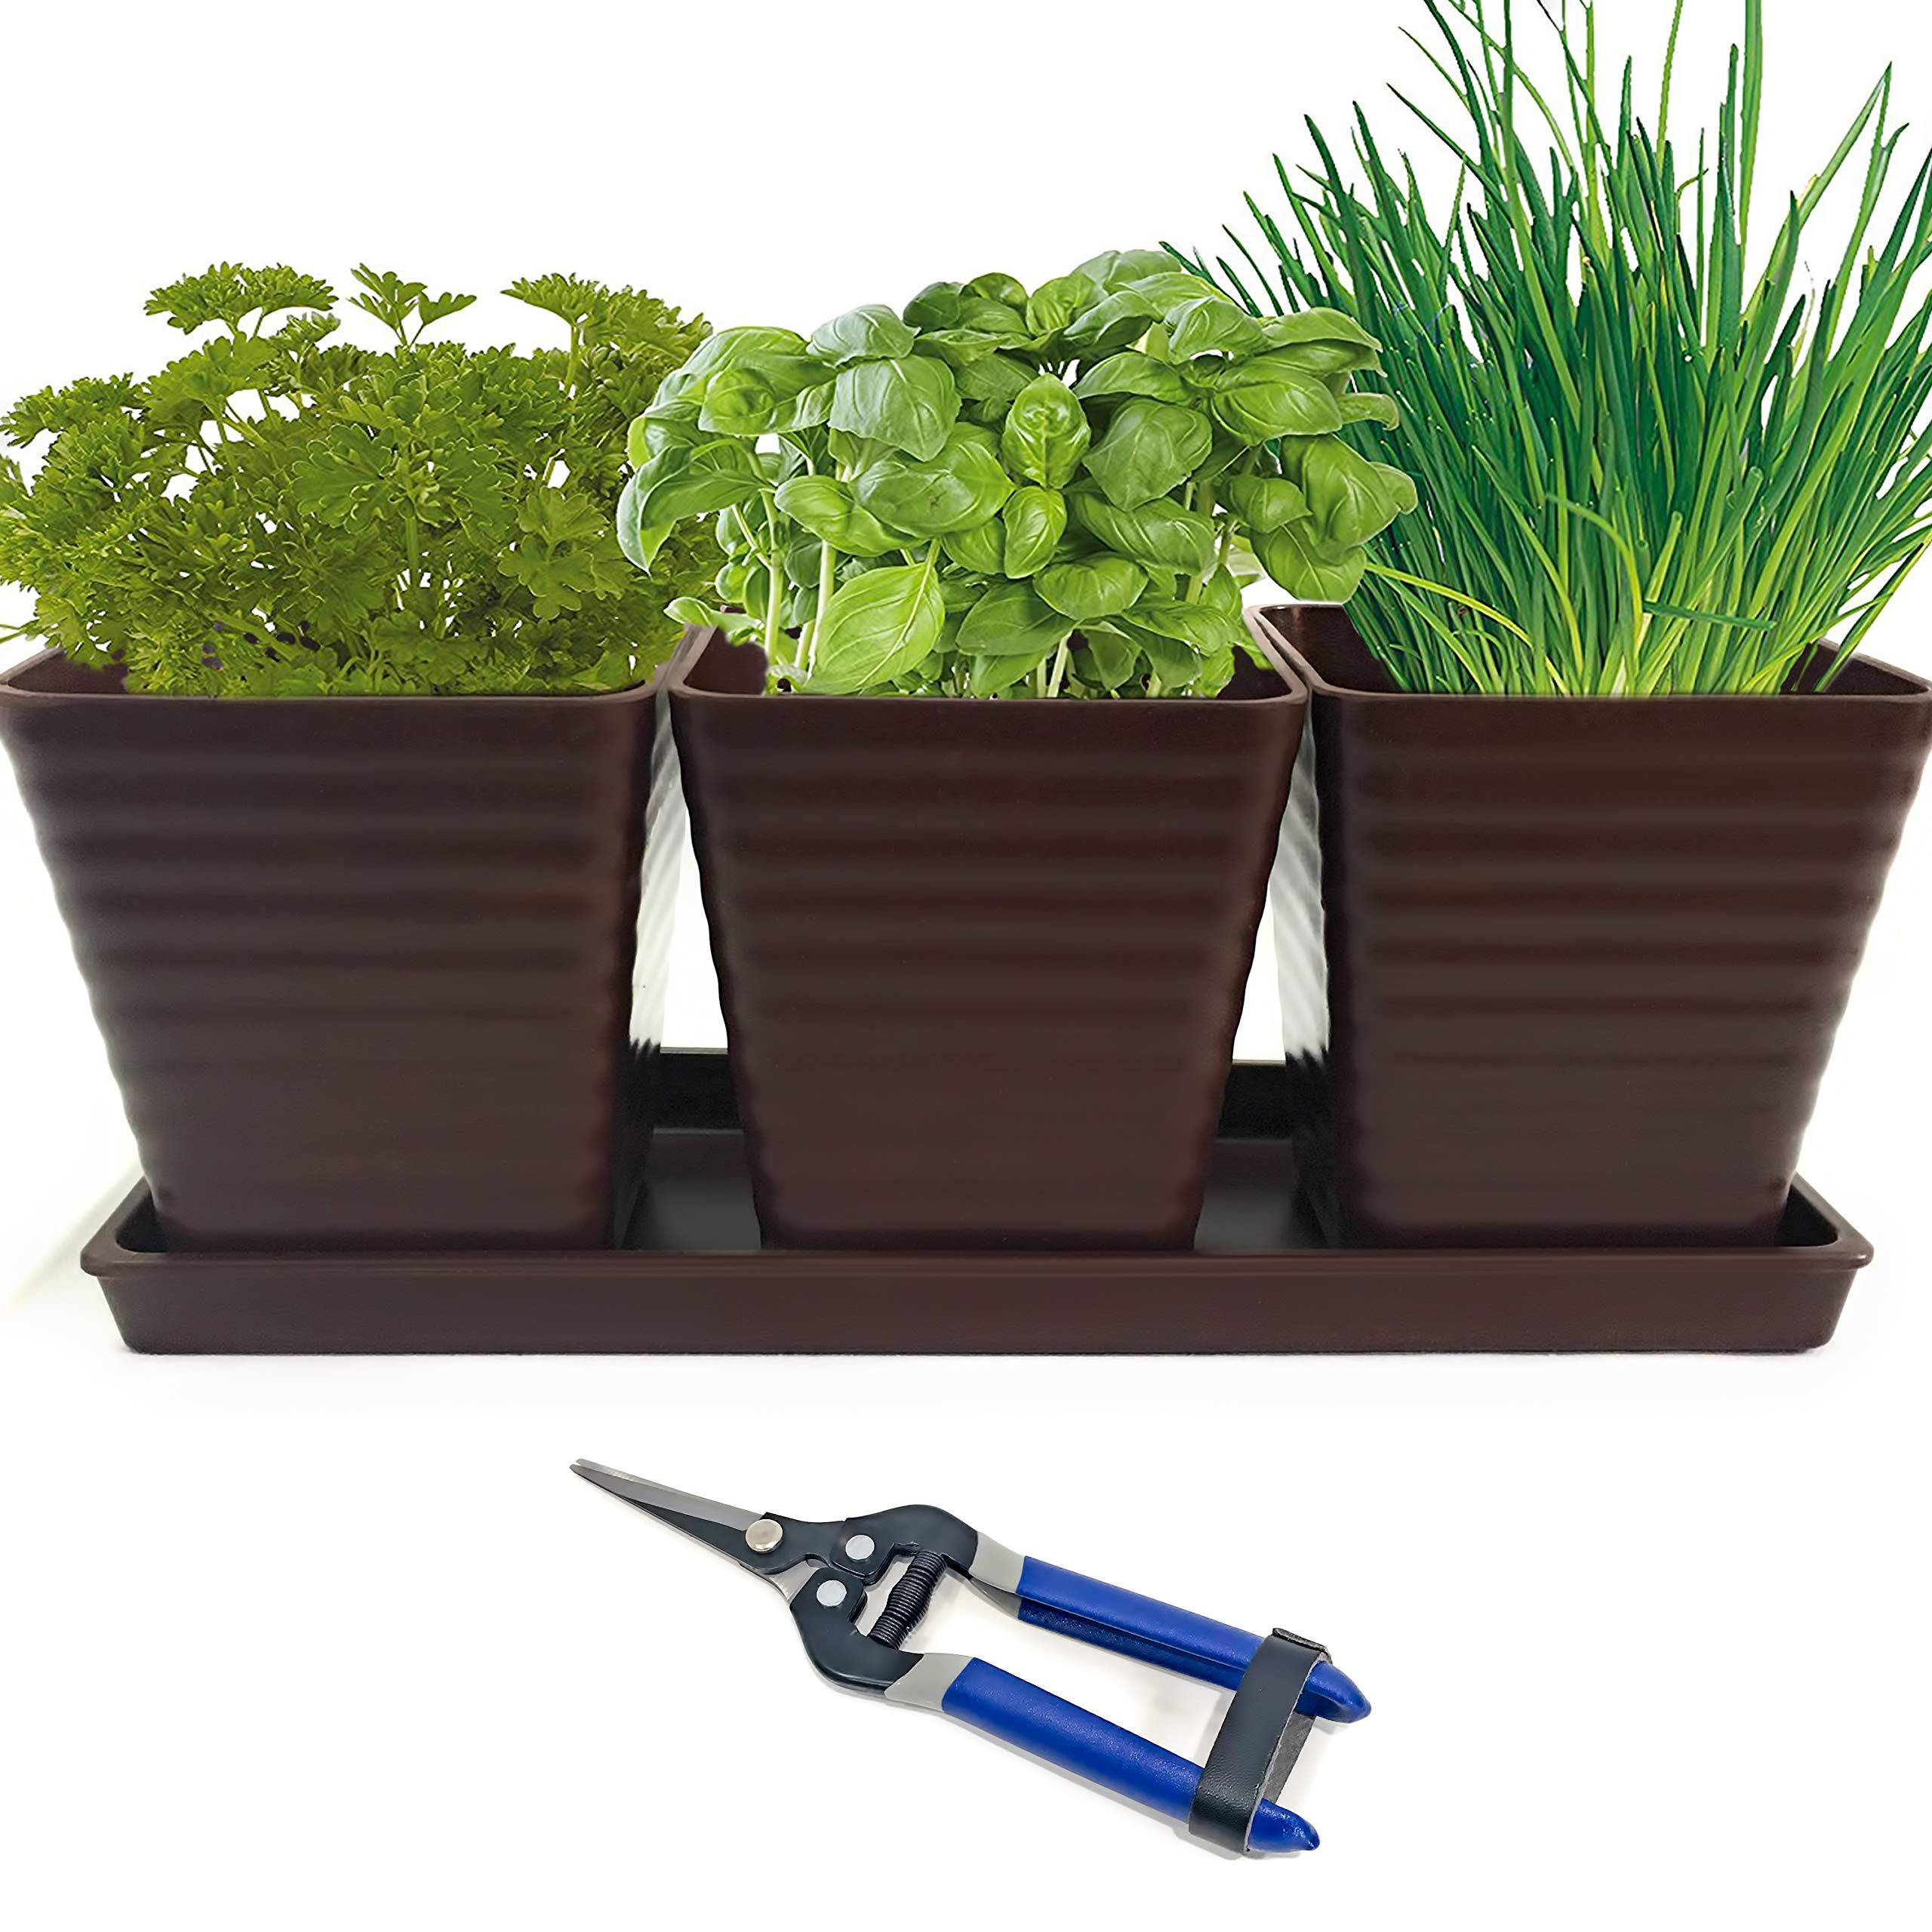 Grow 5 Herbs with Burpee's Herb Garden Starter Kit and Garden Snips Bundle Complete Kit with Everything Needed to Grow Indoor Culinary Herbs in Brown Bamboo Planter Basil Parsley Chives and Cilantro